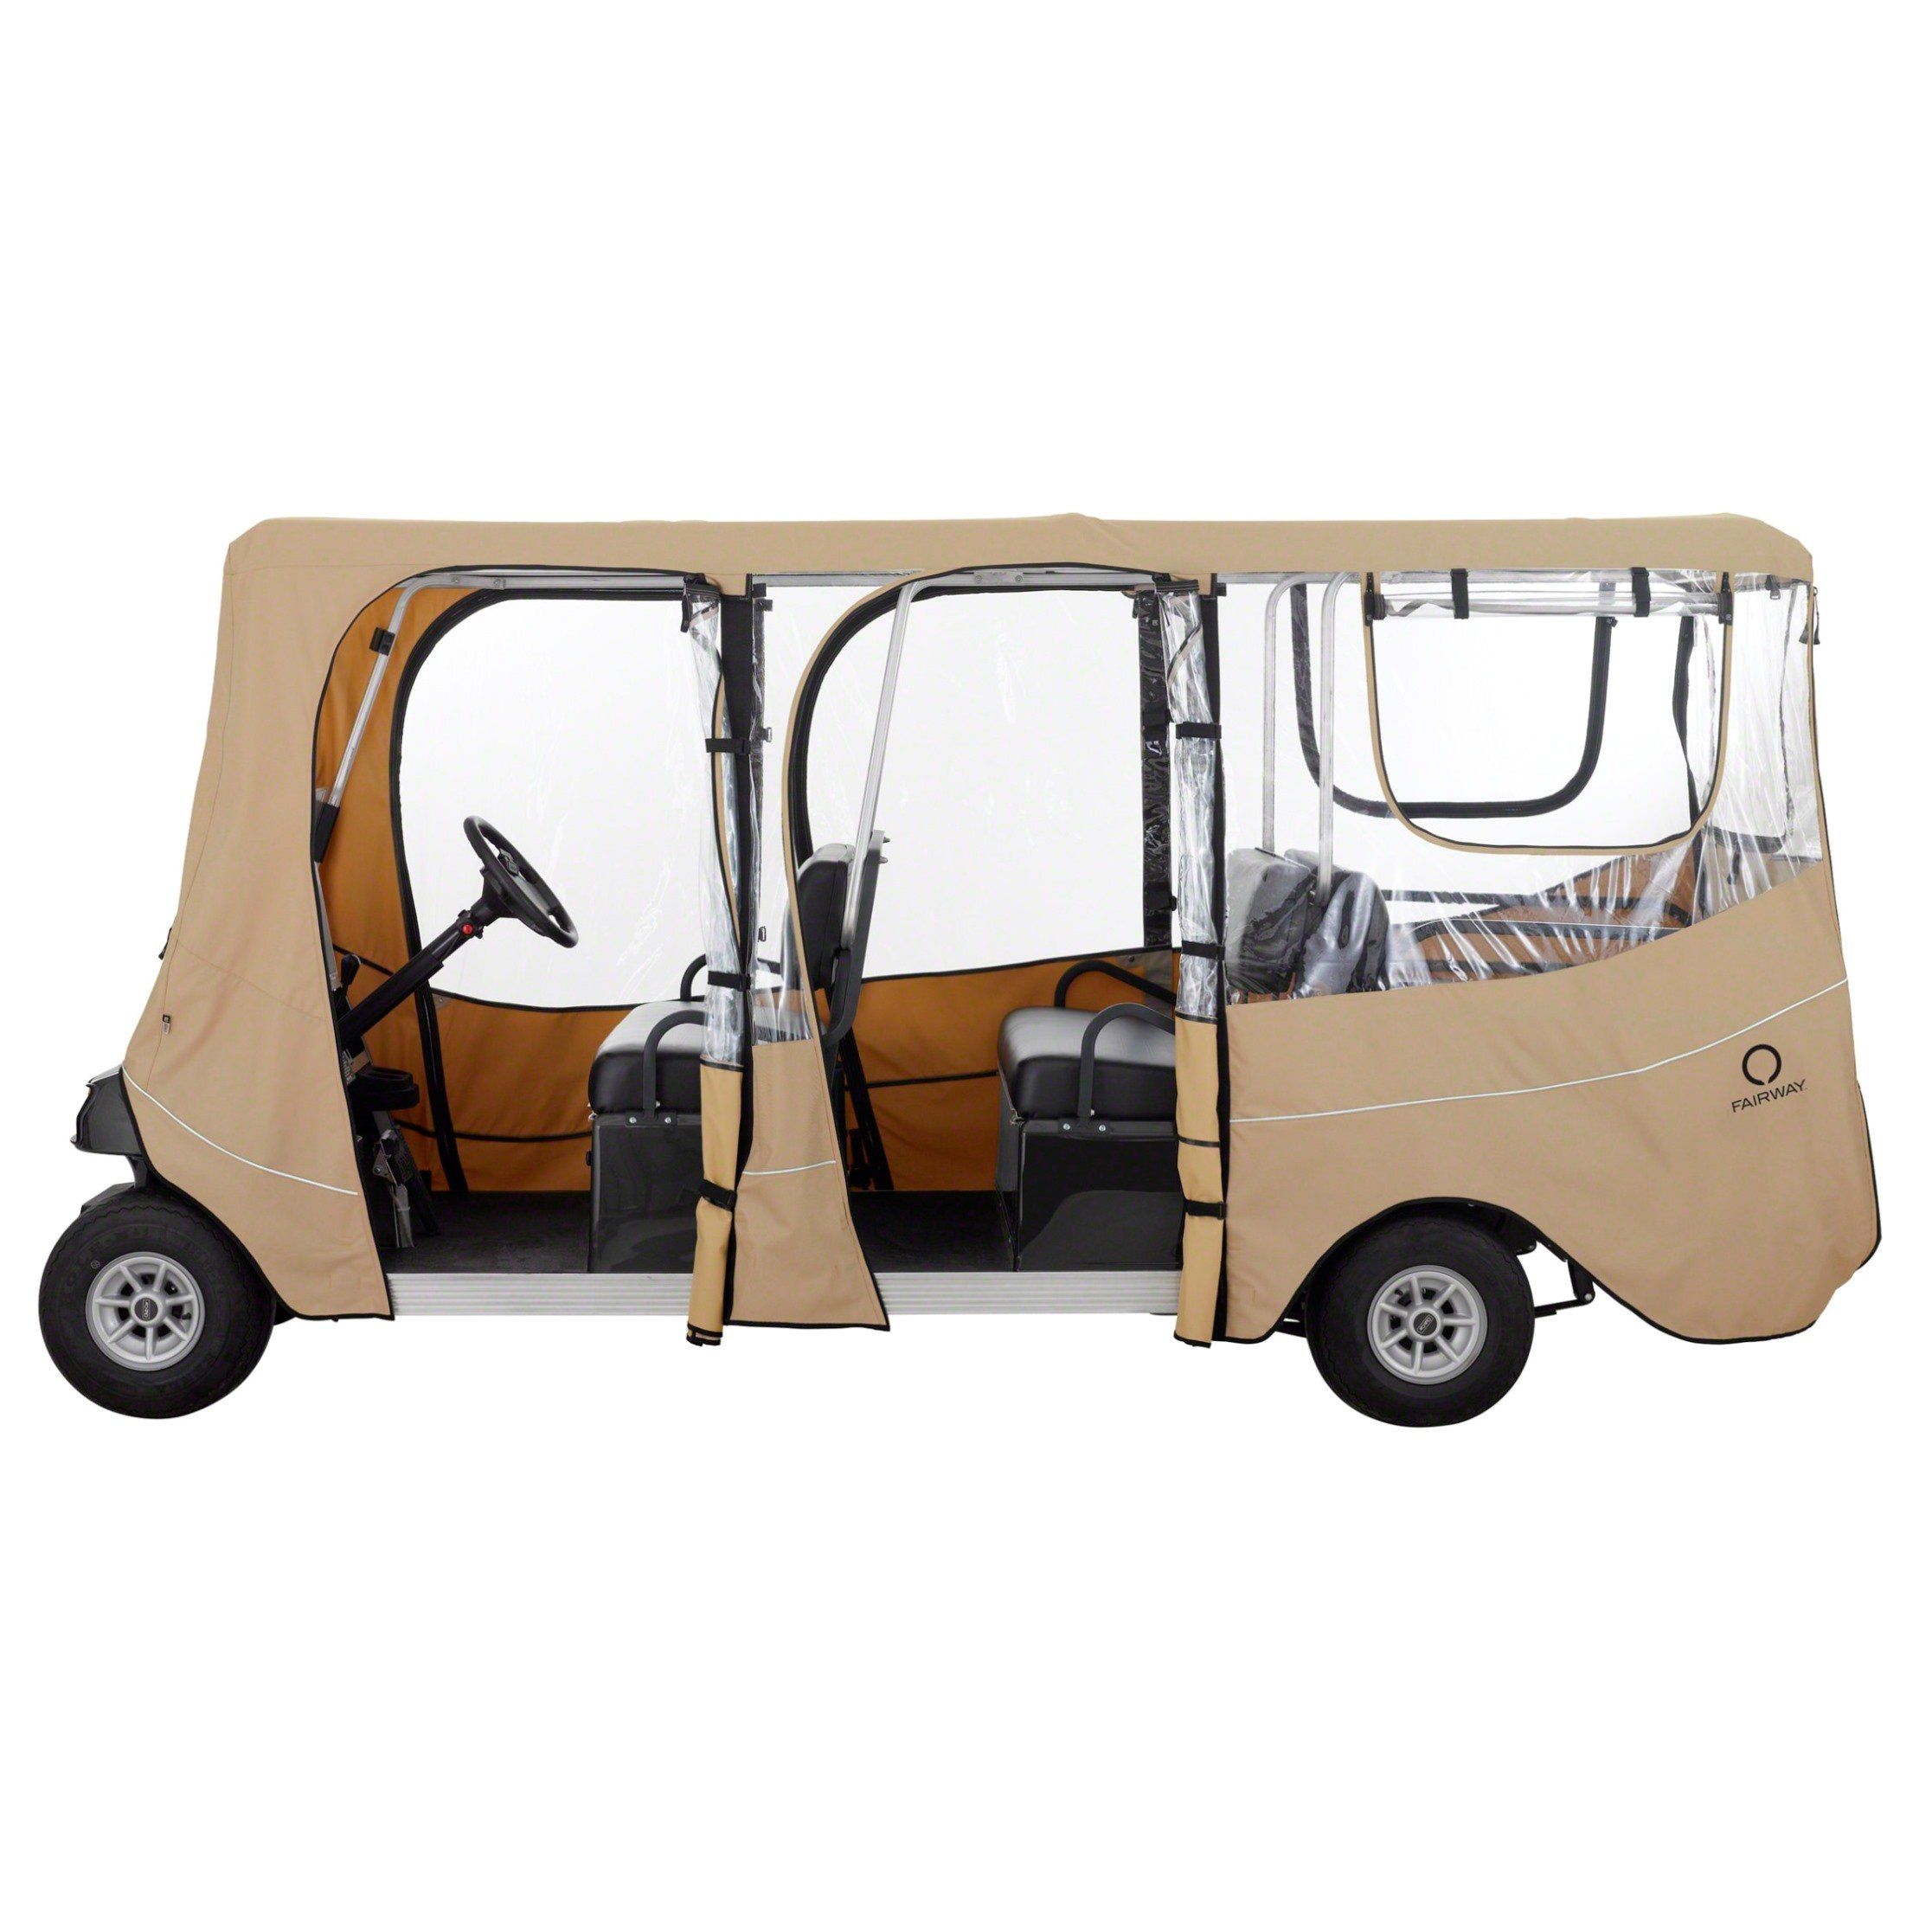 Classic Accessories Fairway Golf Cart Deluxe Enclosure, Khaki, Extra Long Roof by Classic Accessories (Image #2)